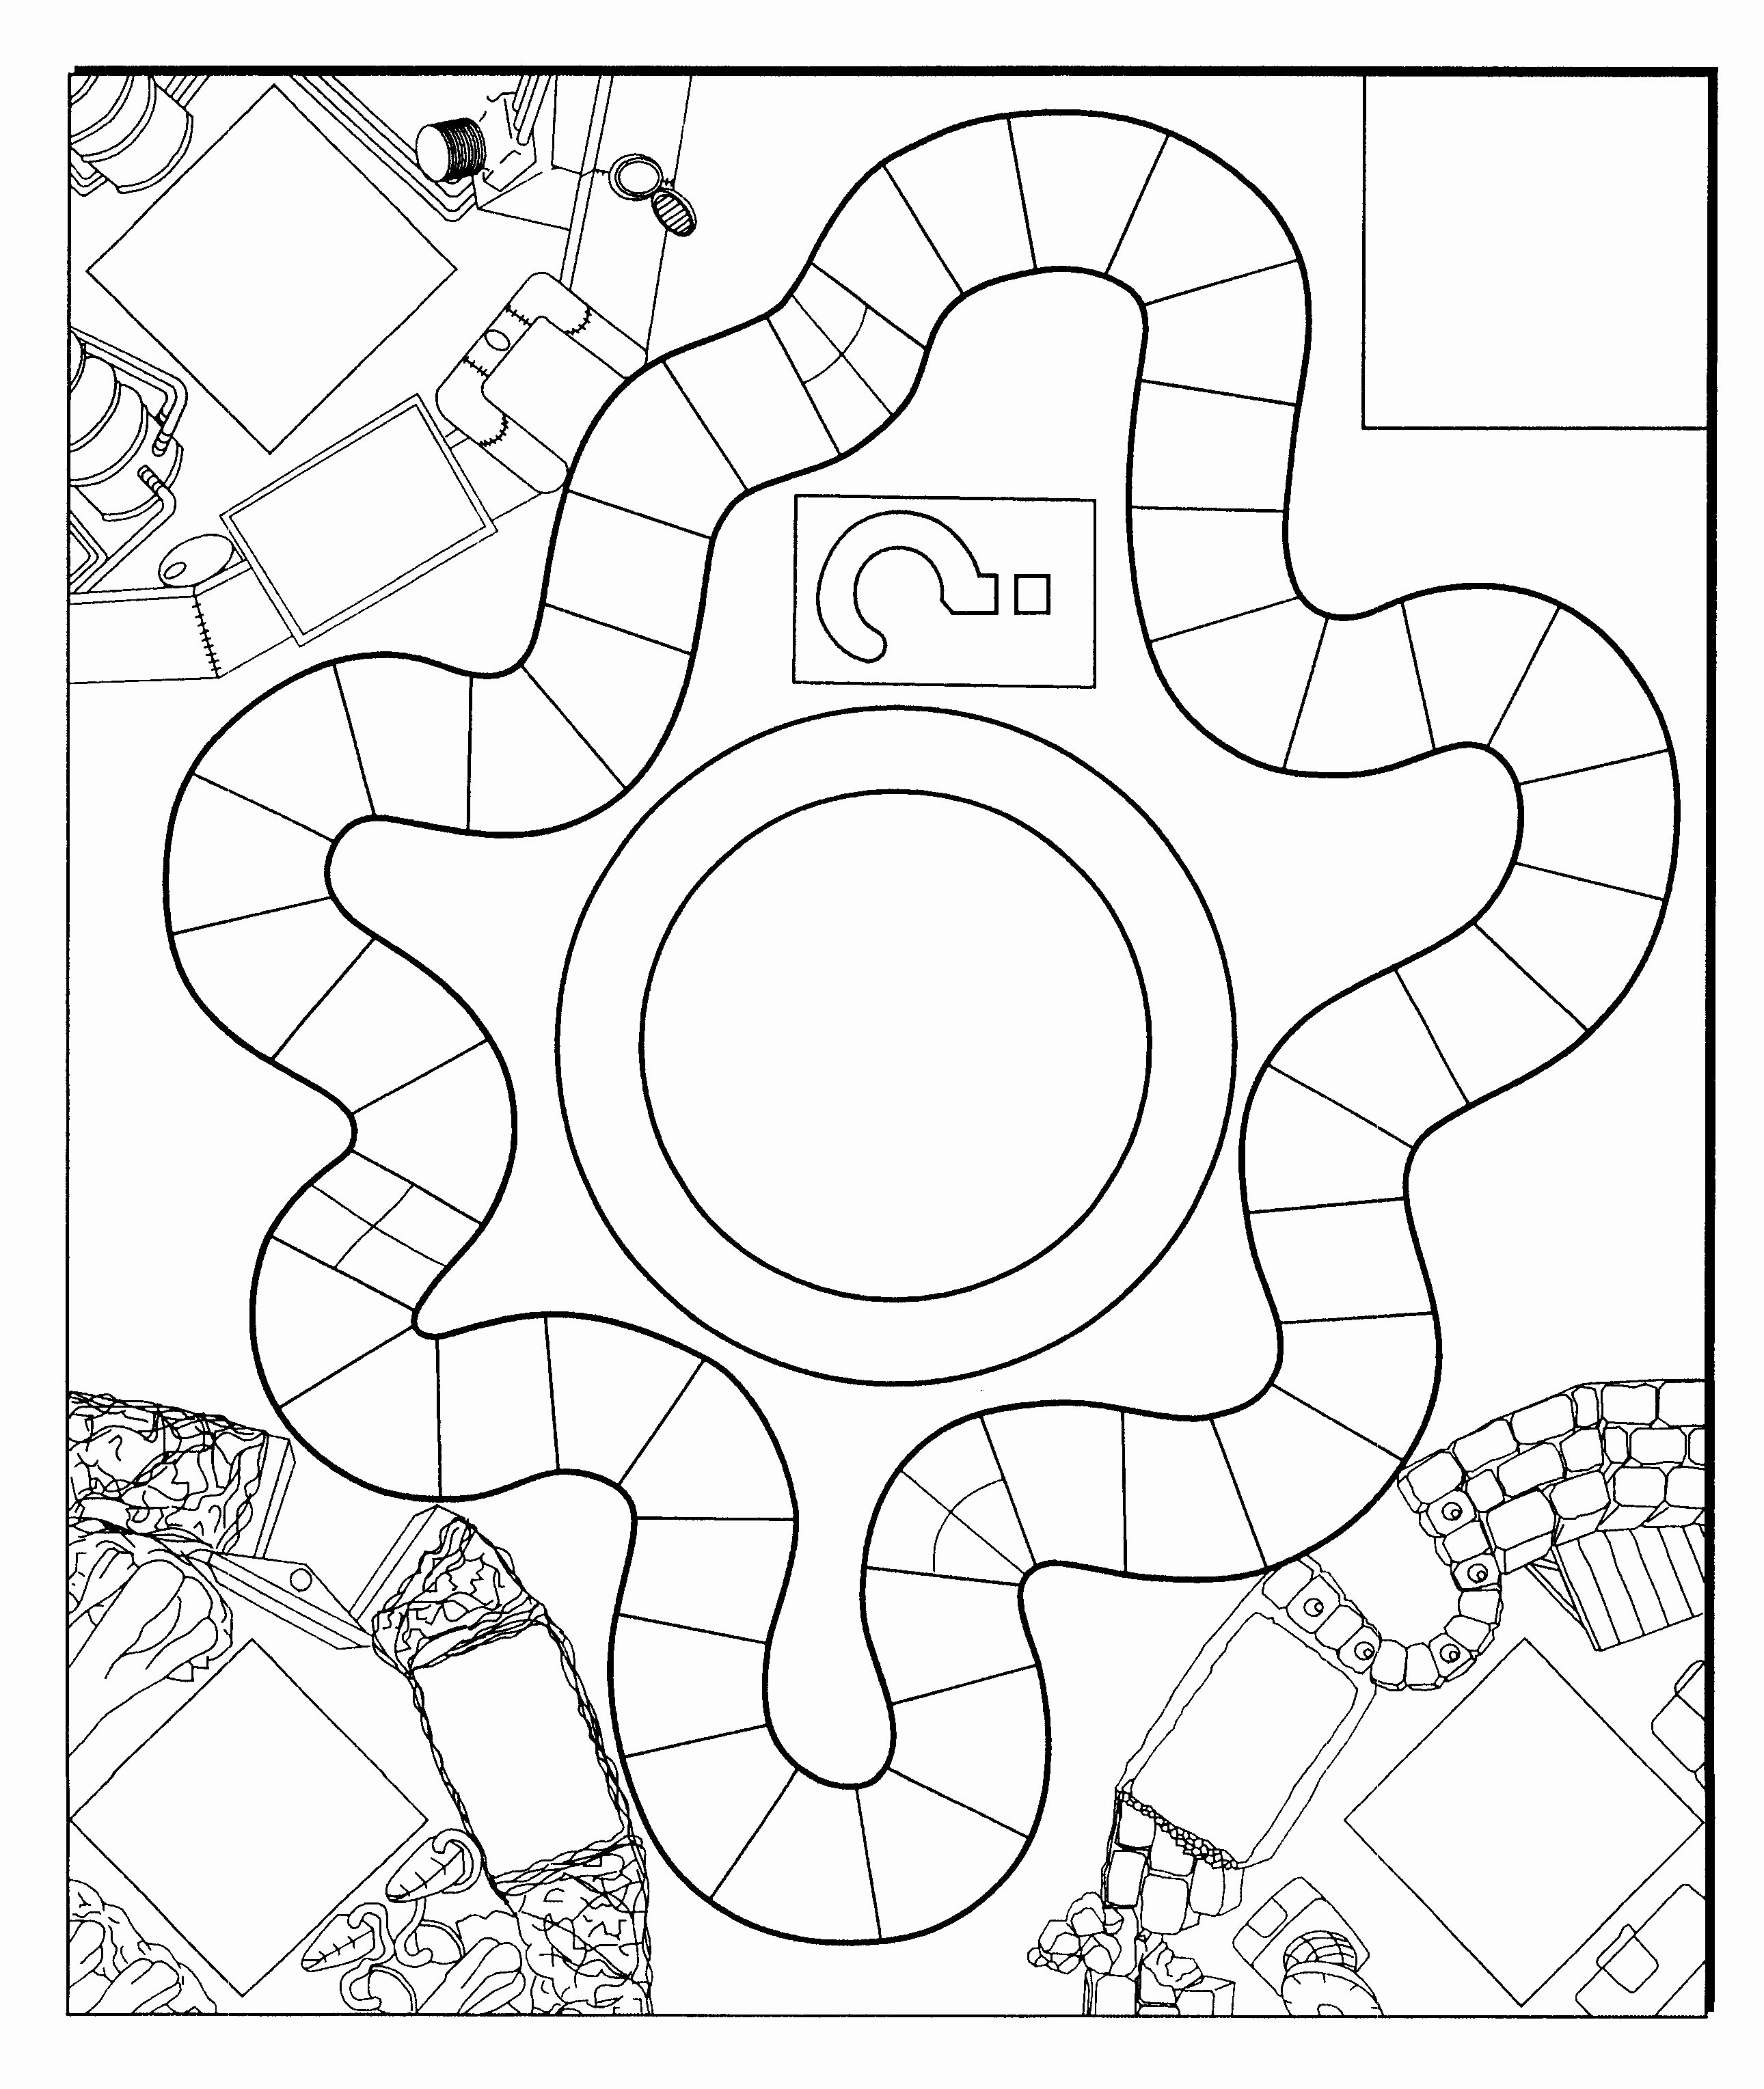 Creating A Board Game Template Fresh Blank Board Game Template for Zathura